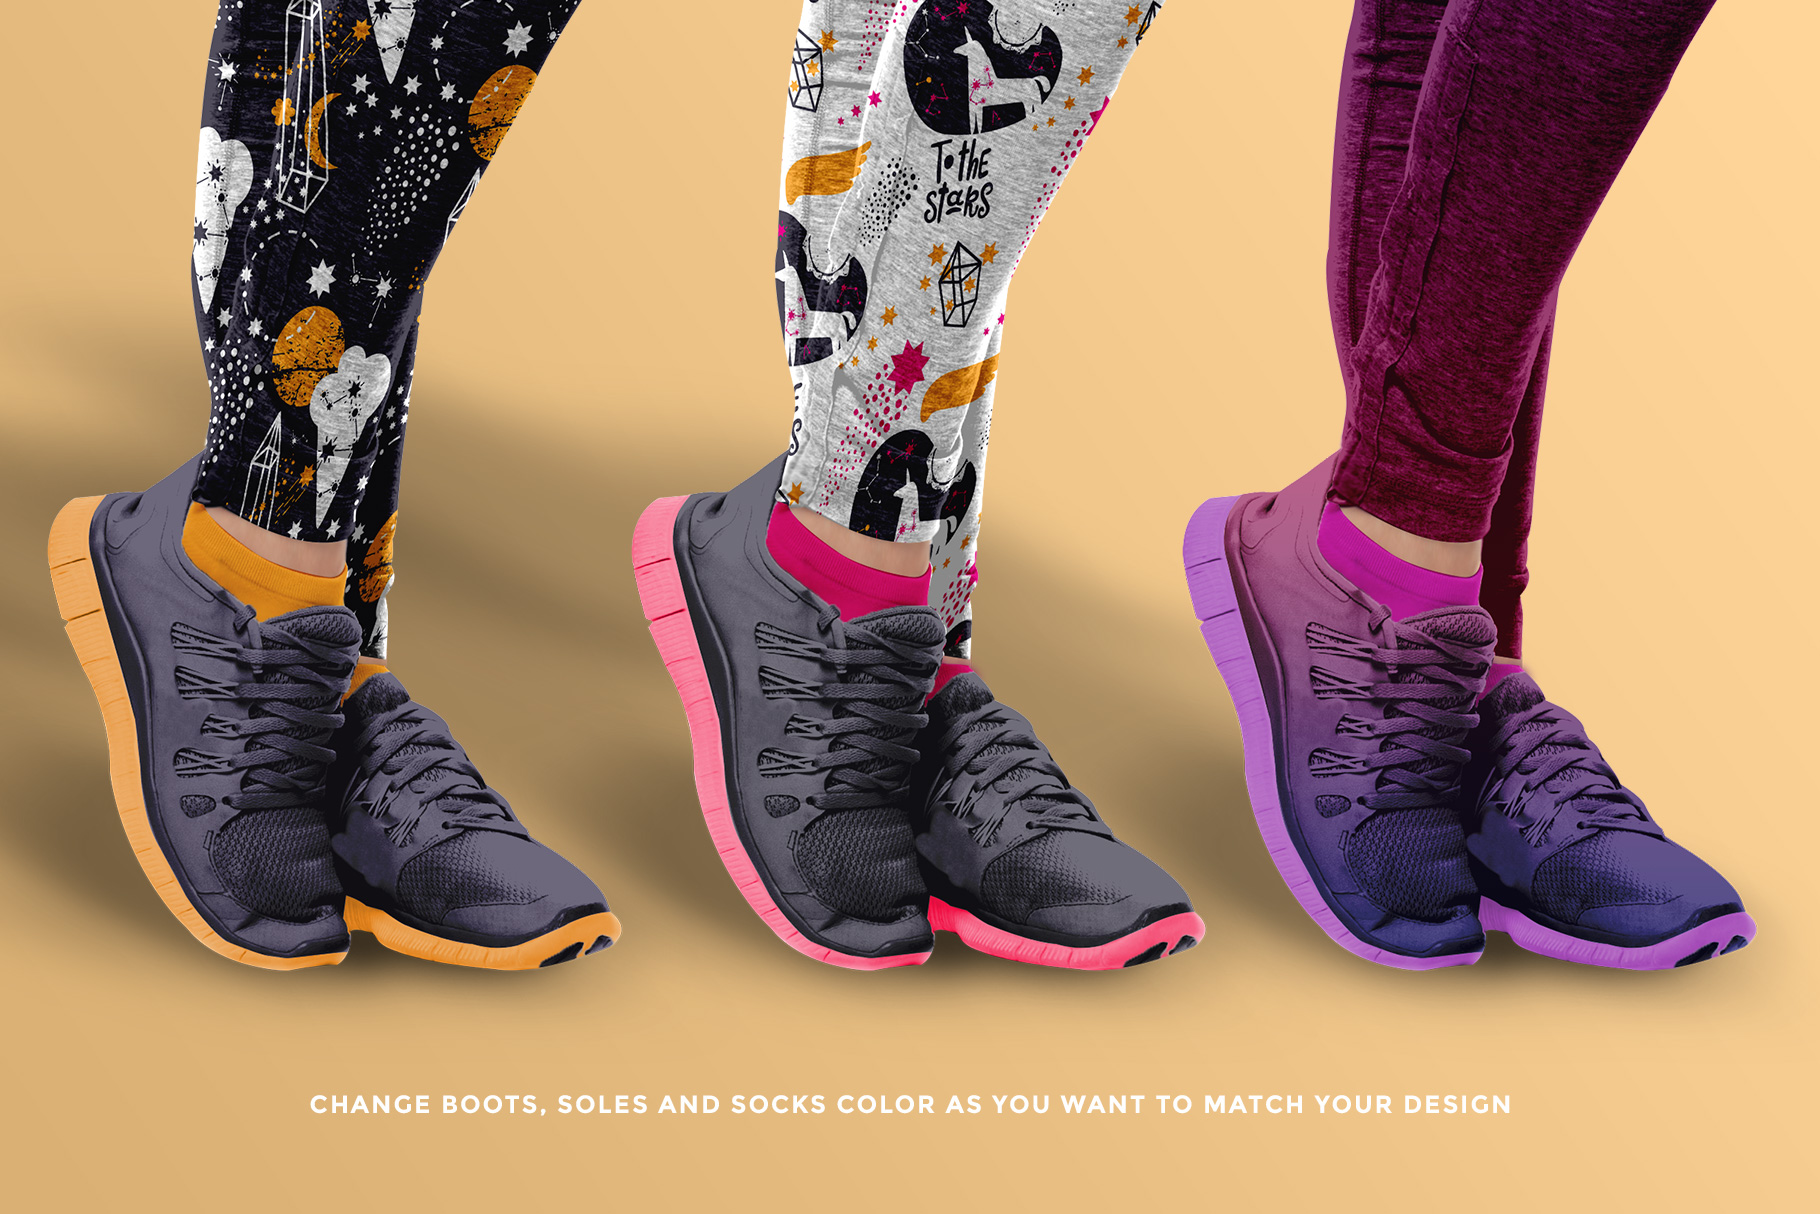 special shoe features of the female fitness outfit mockup